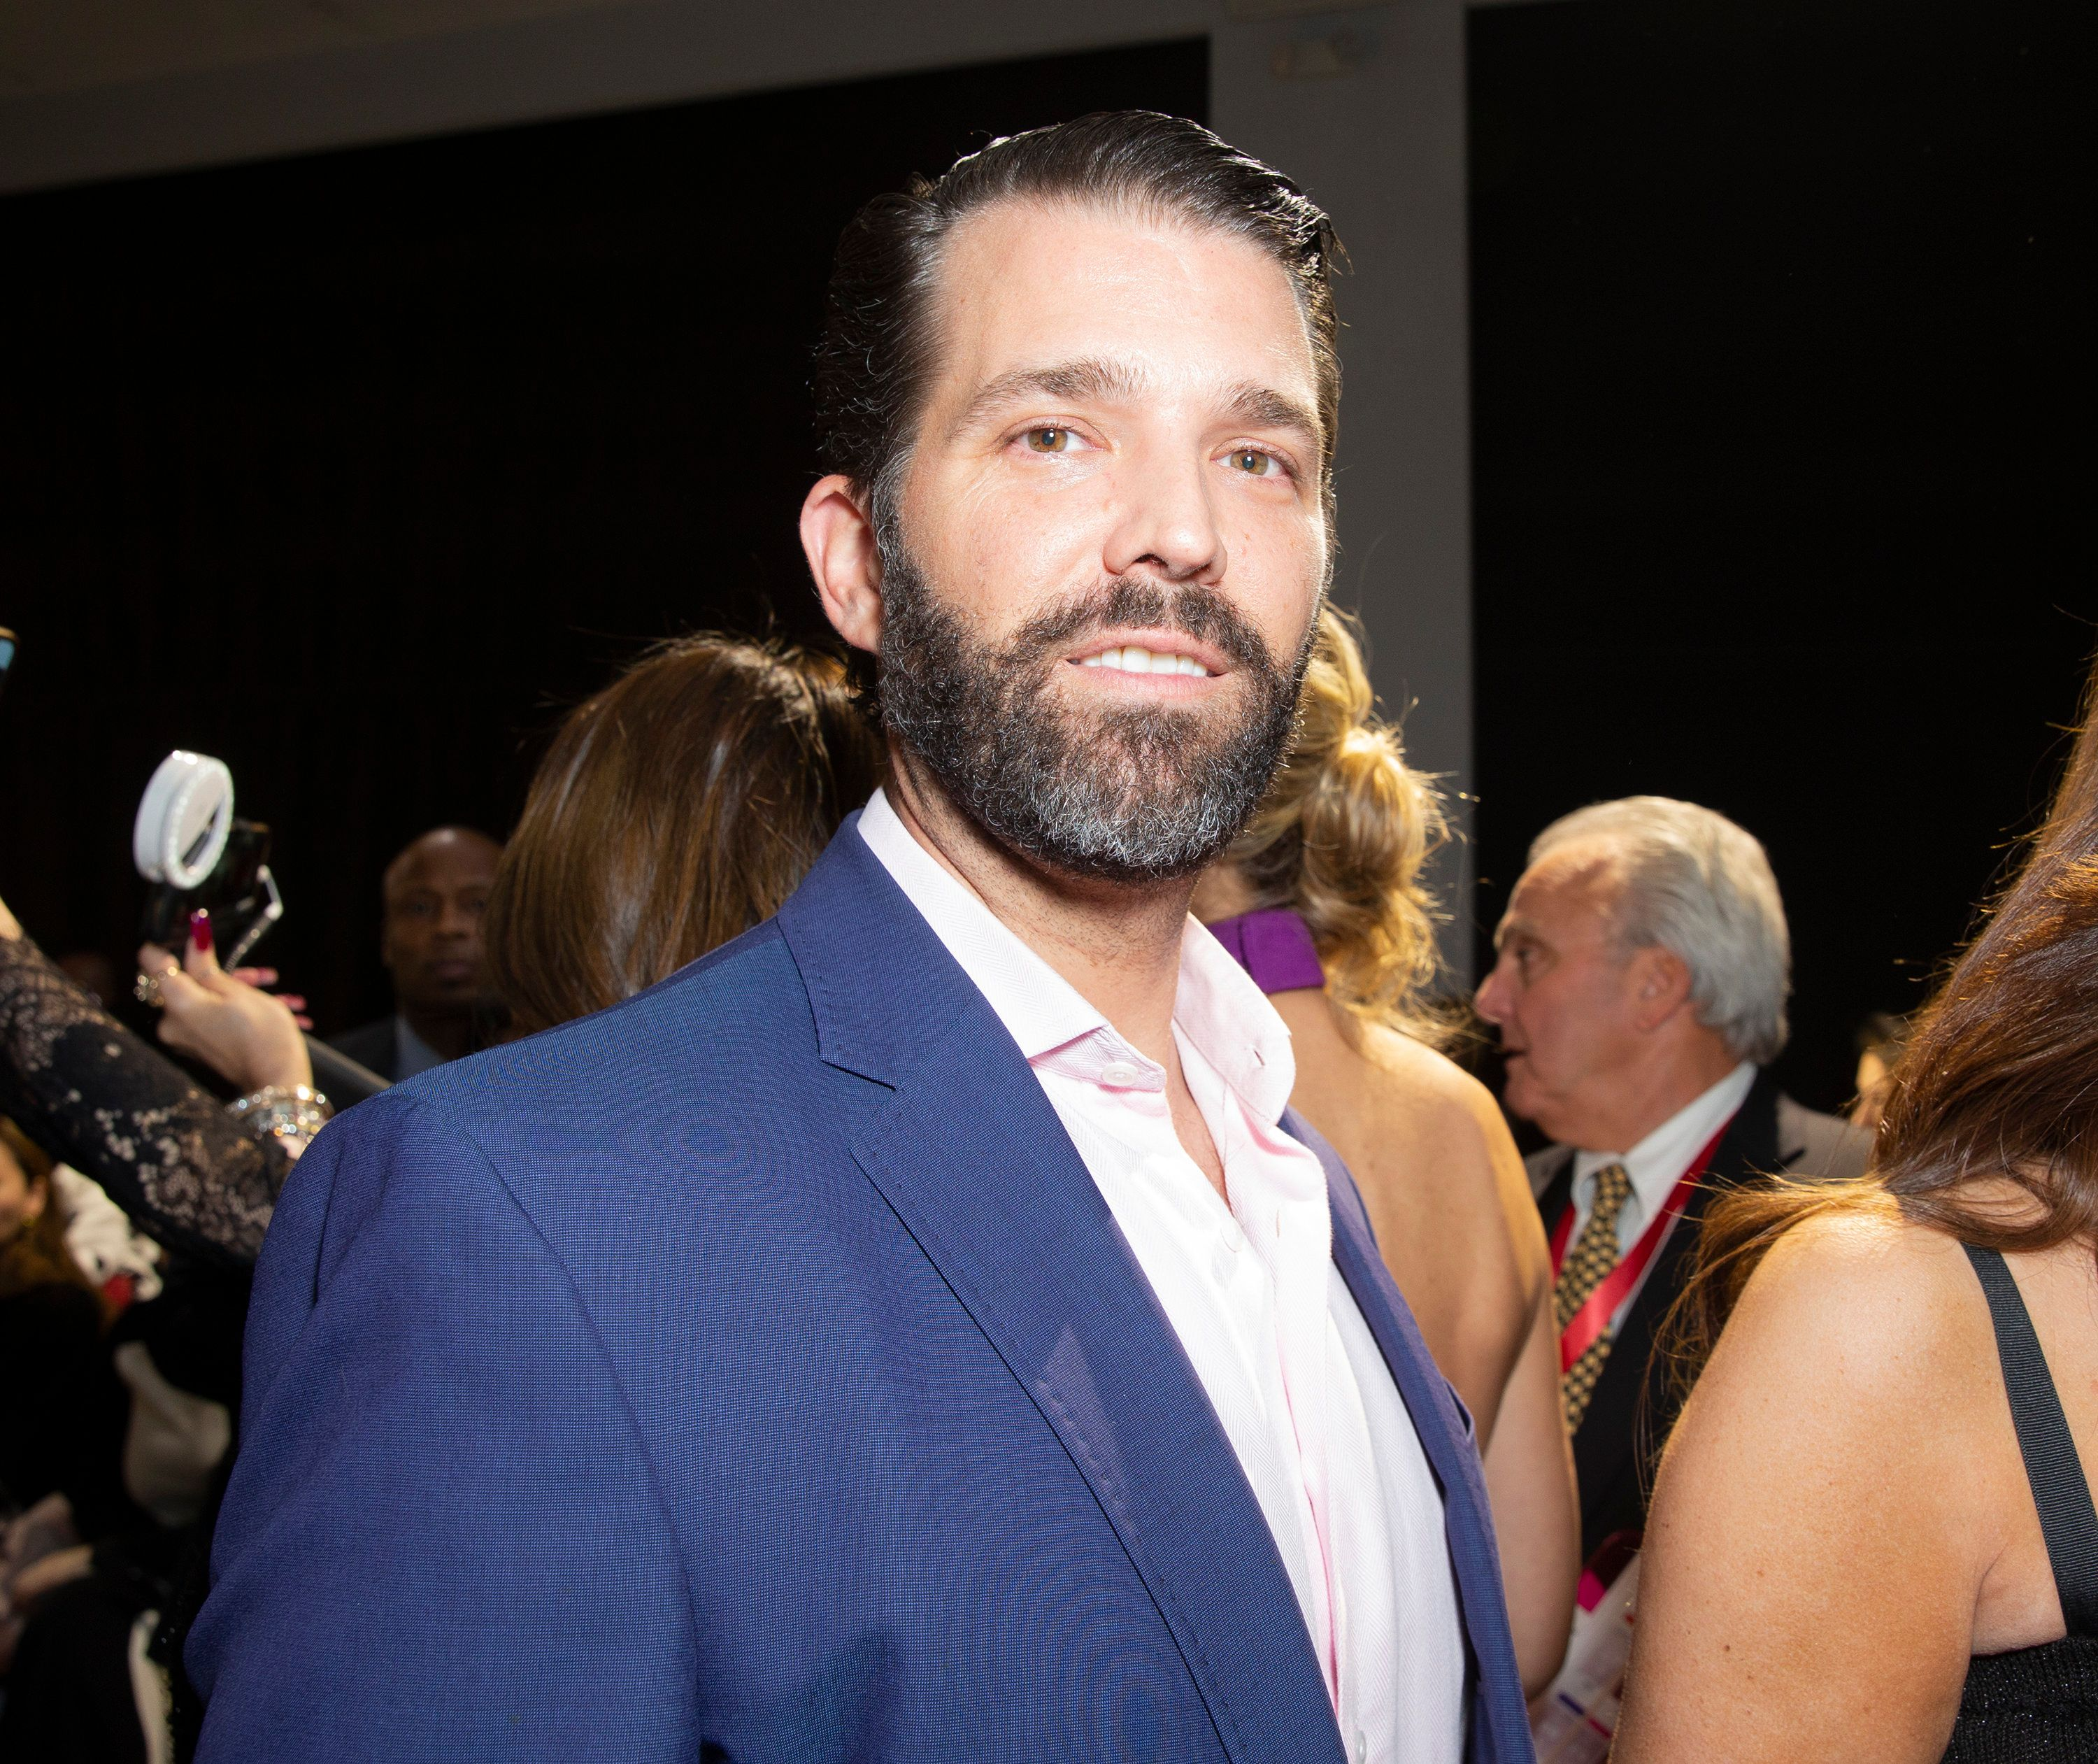 SPRING STUDIOS, NEW YORK, UNITED STATES - 2019/02/13: Donald Trump Jr. attends runway for Zang Toi Fall/Winter collection during New York Fashion Week at Spring Studios. (Photo by Lev Radin/Pacific Press/LightRocket via Getty Images)